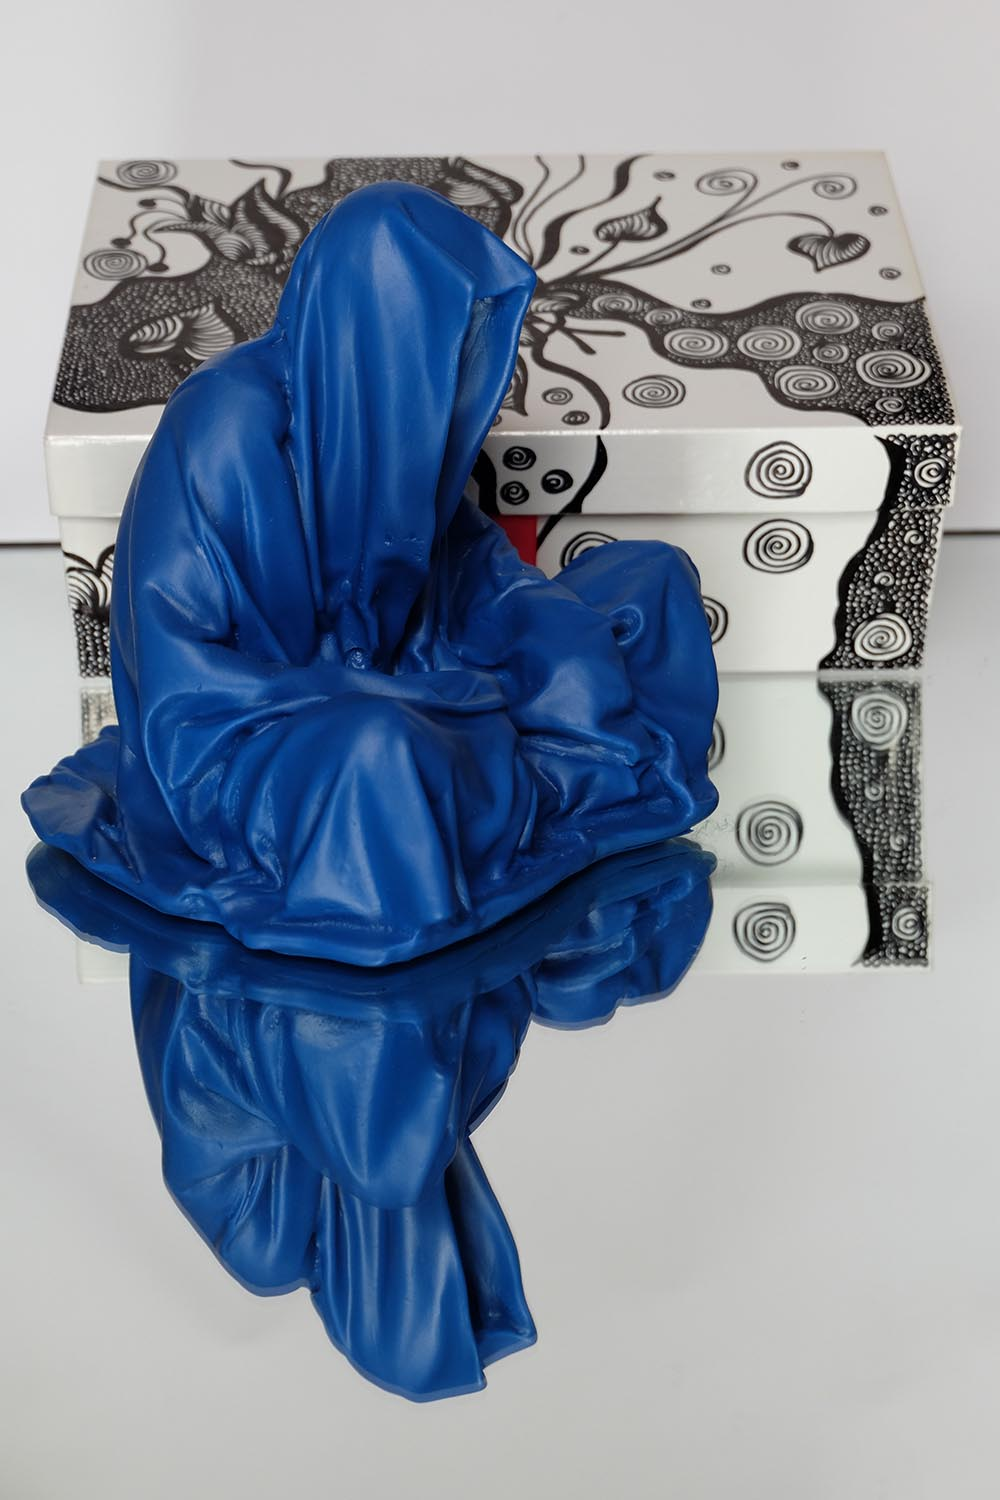 guardians of time manfred kielnhofer pink box rosa rot silvia l lueftenegger contemporary art design sulpture 2965xx